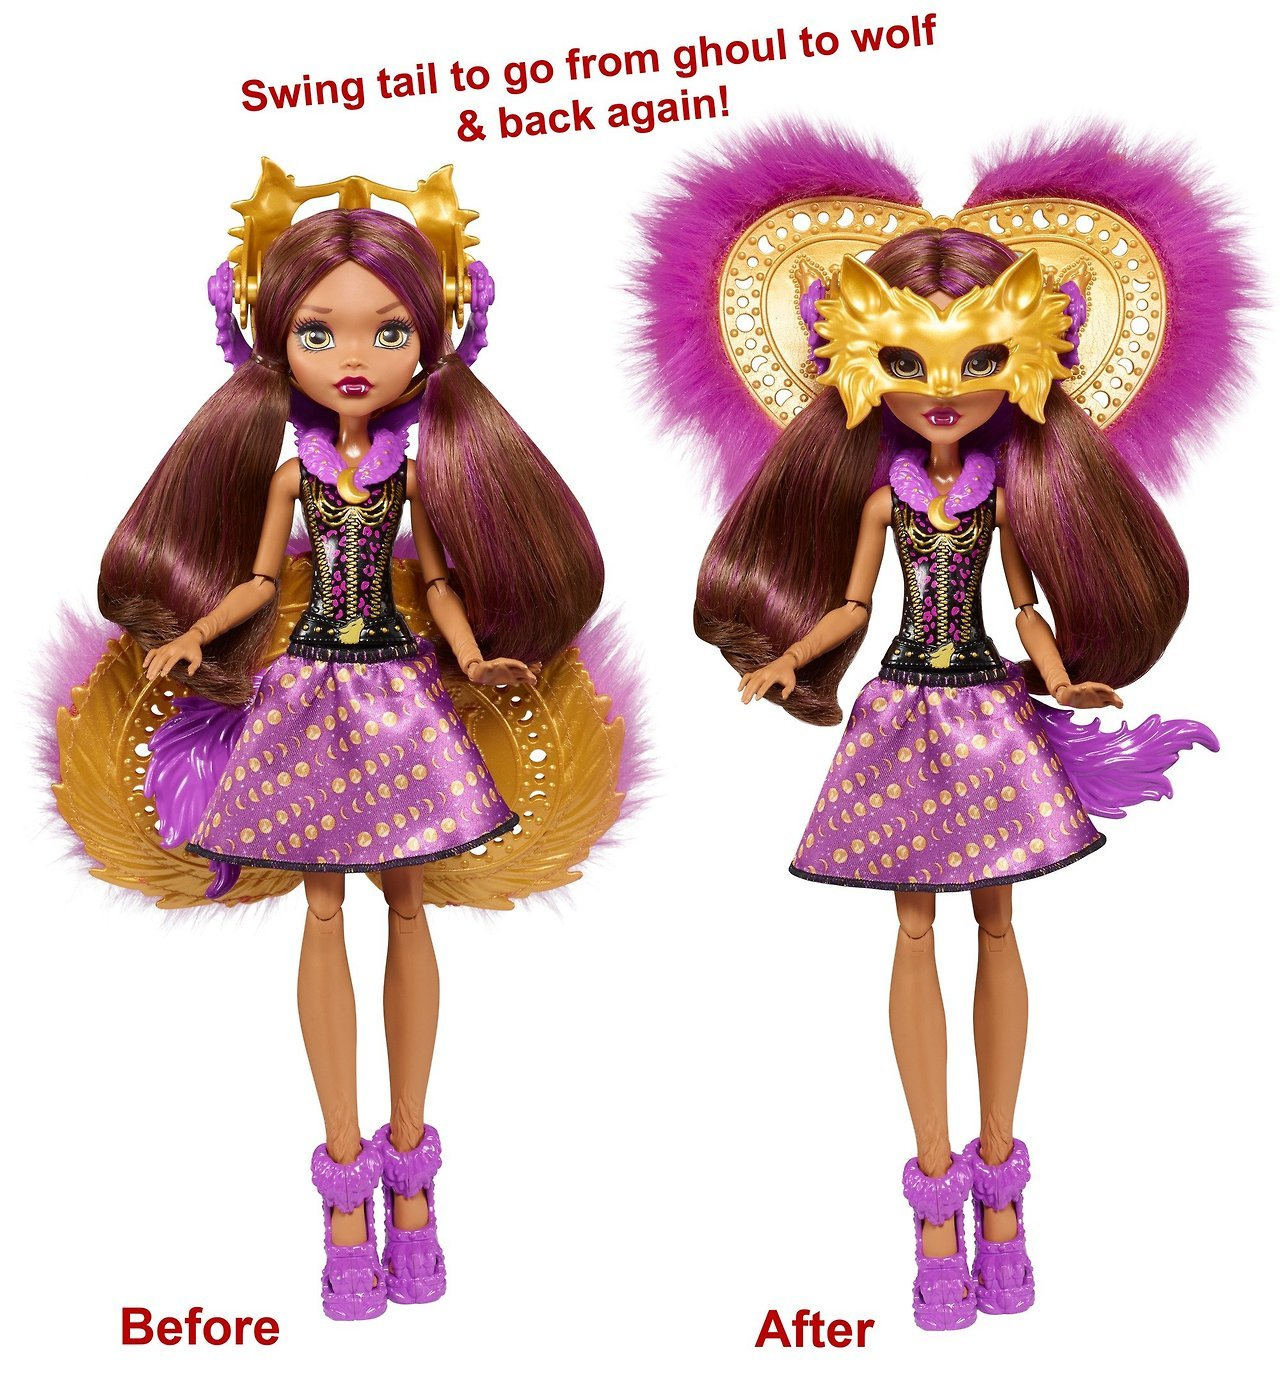 New Monster High Dolls 2018  Ballerinas, Ghoul To Bat, Ghoul To